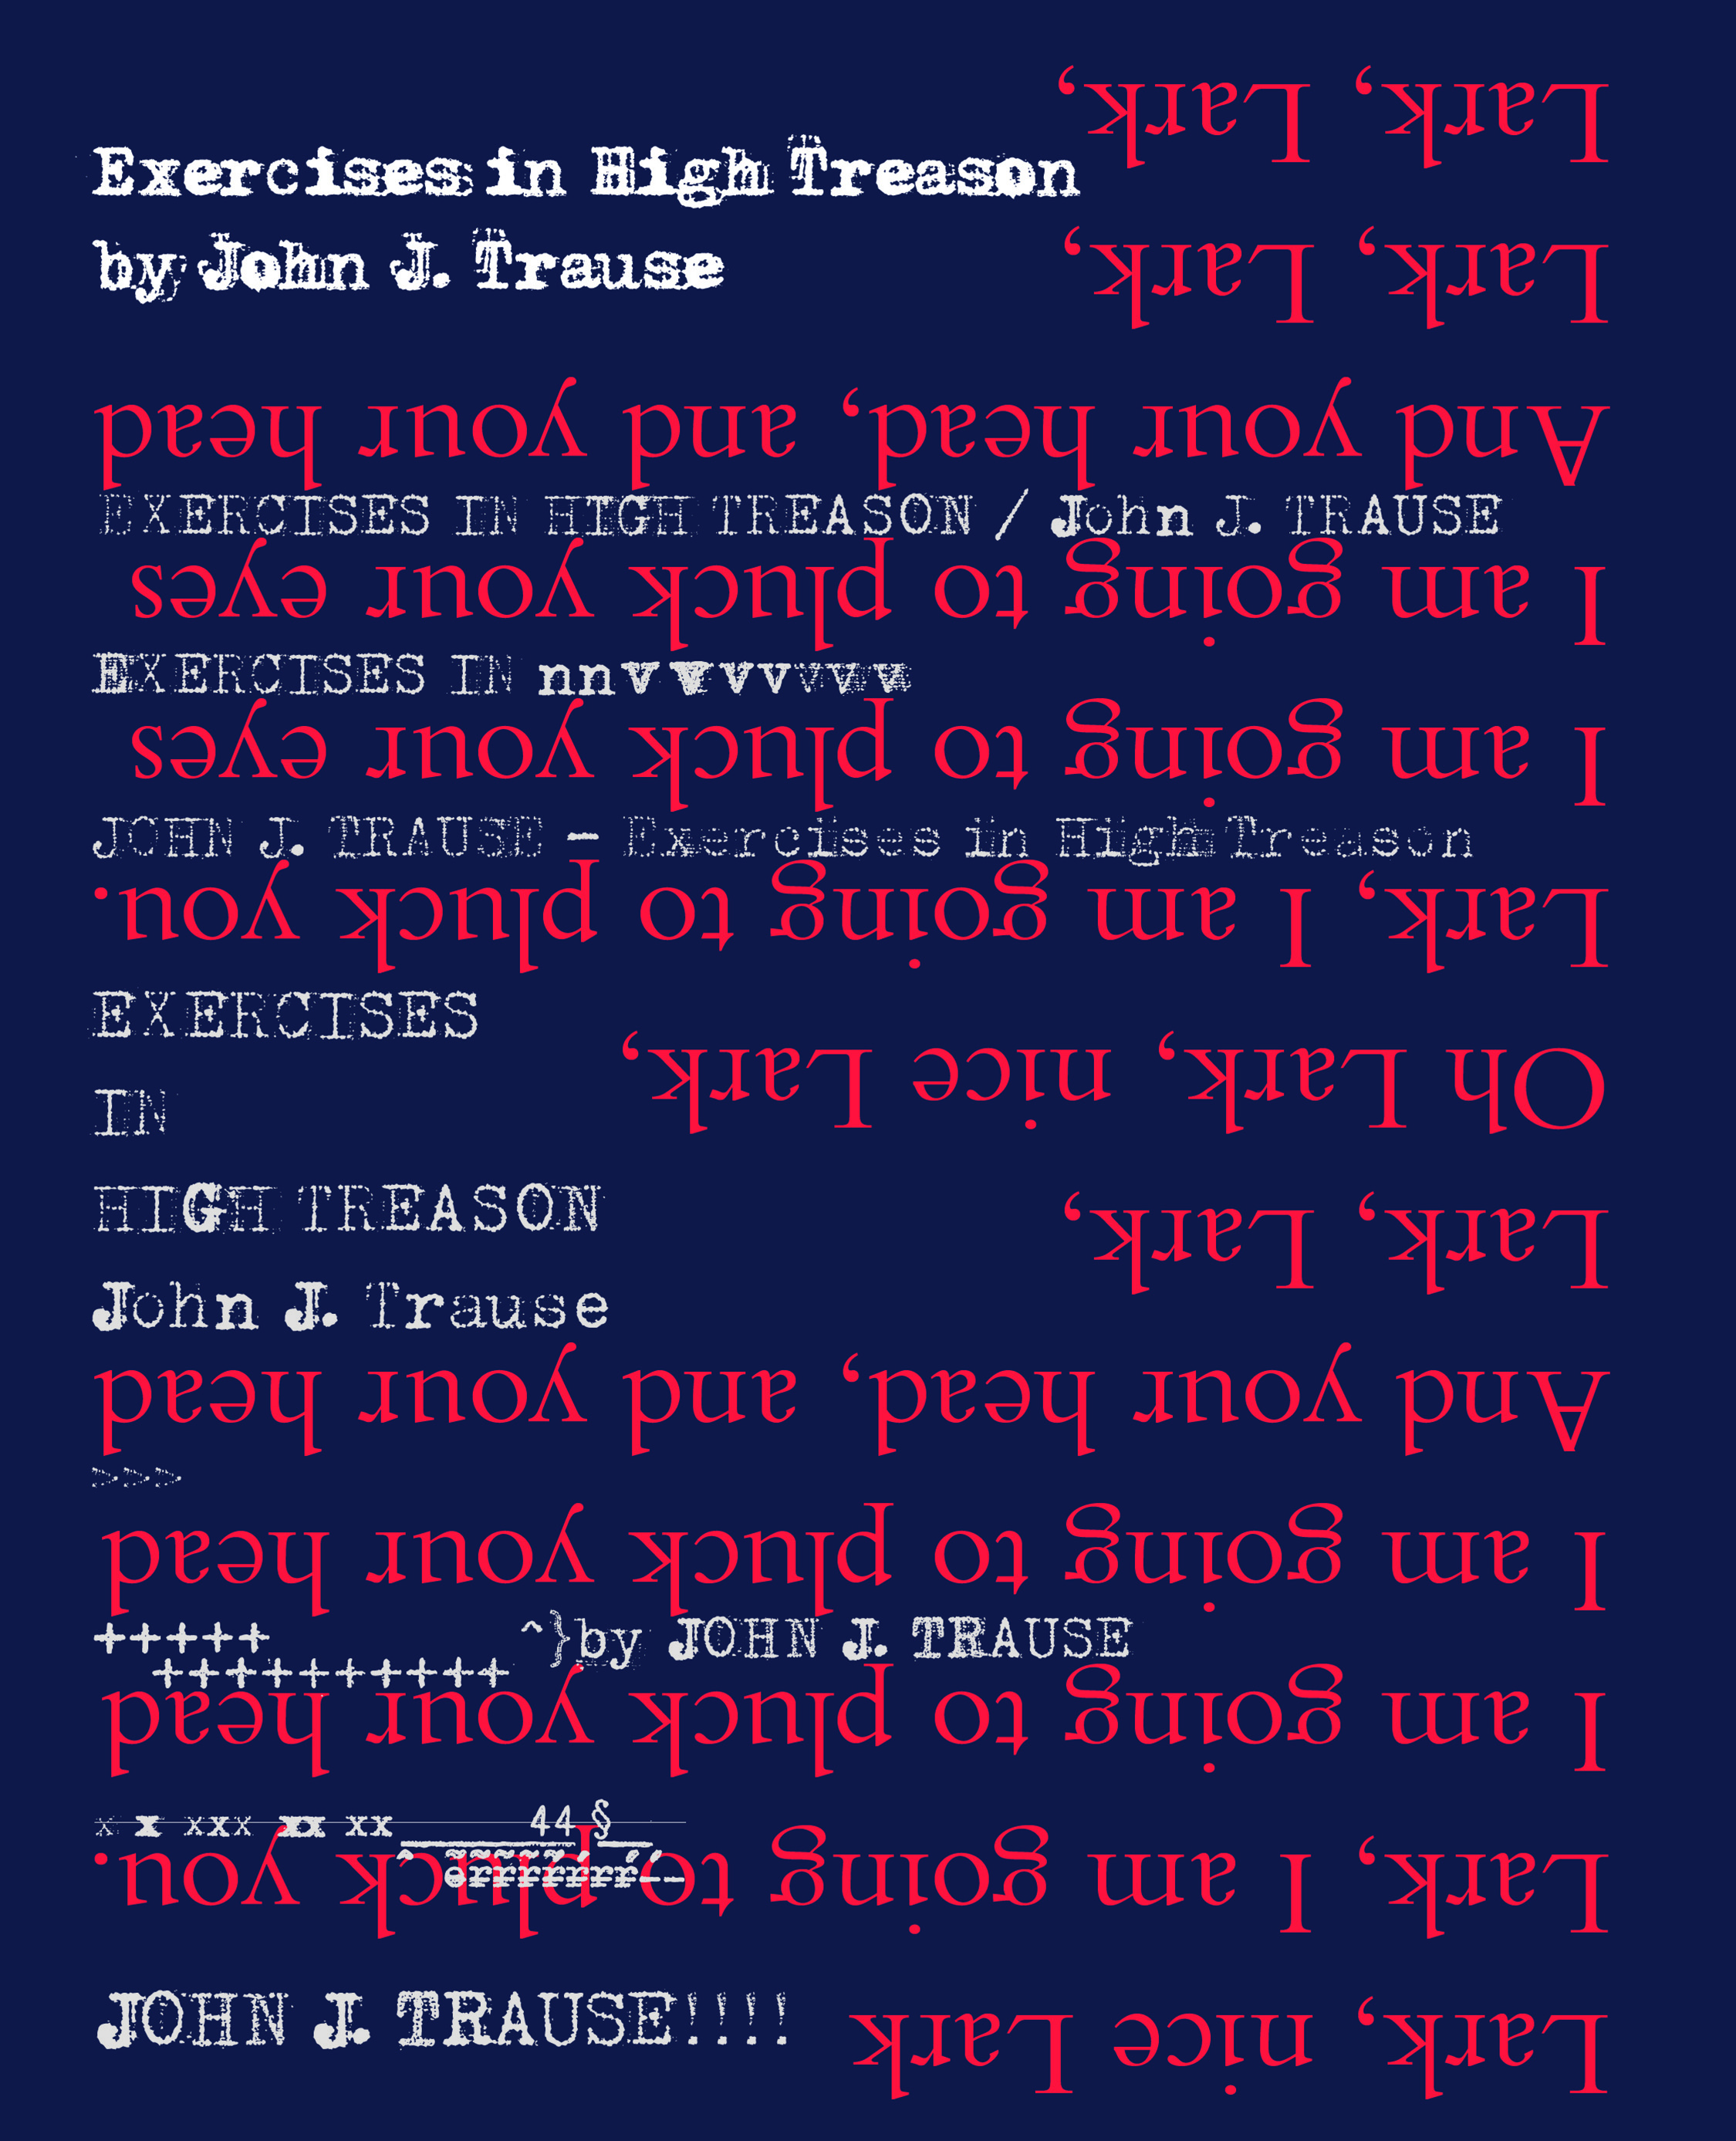 John-J-Trause-front-cover.jpg